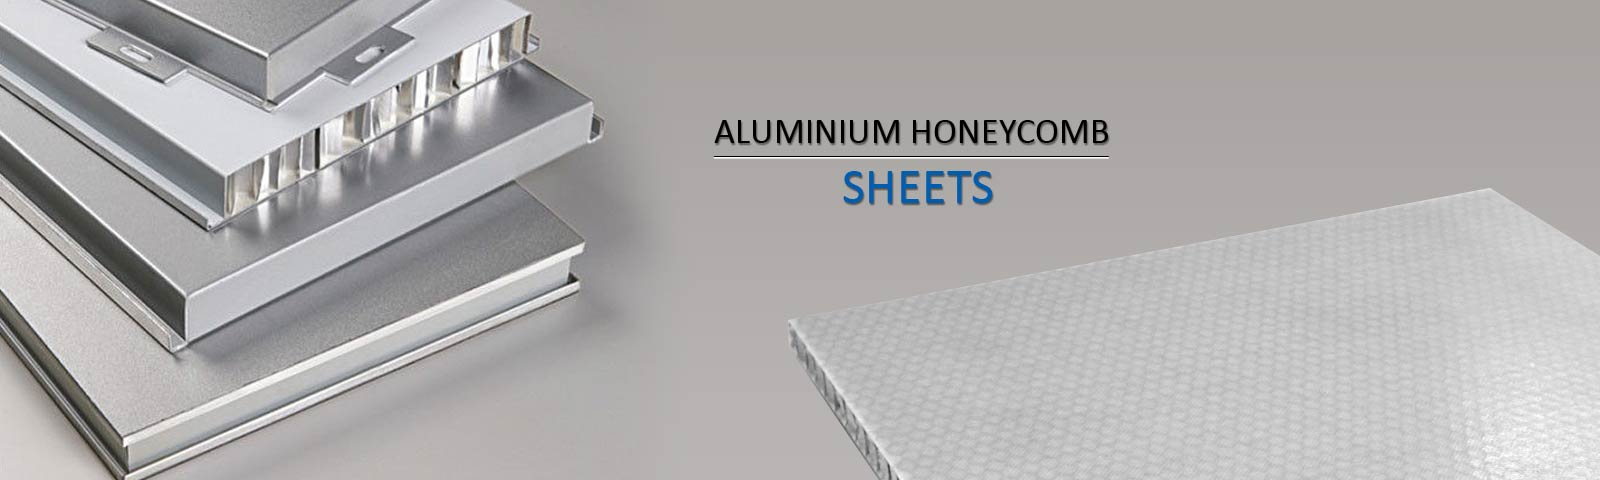 Aluminium Honeycom Sheets Manufacturer and Supplier in Darrang